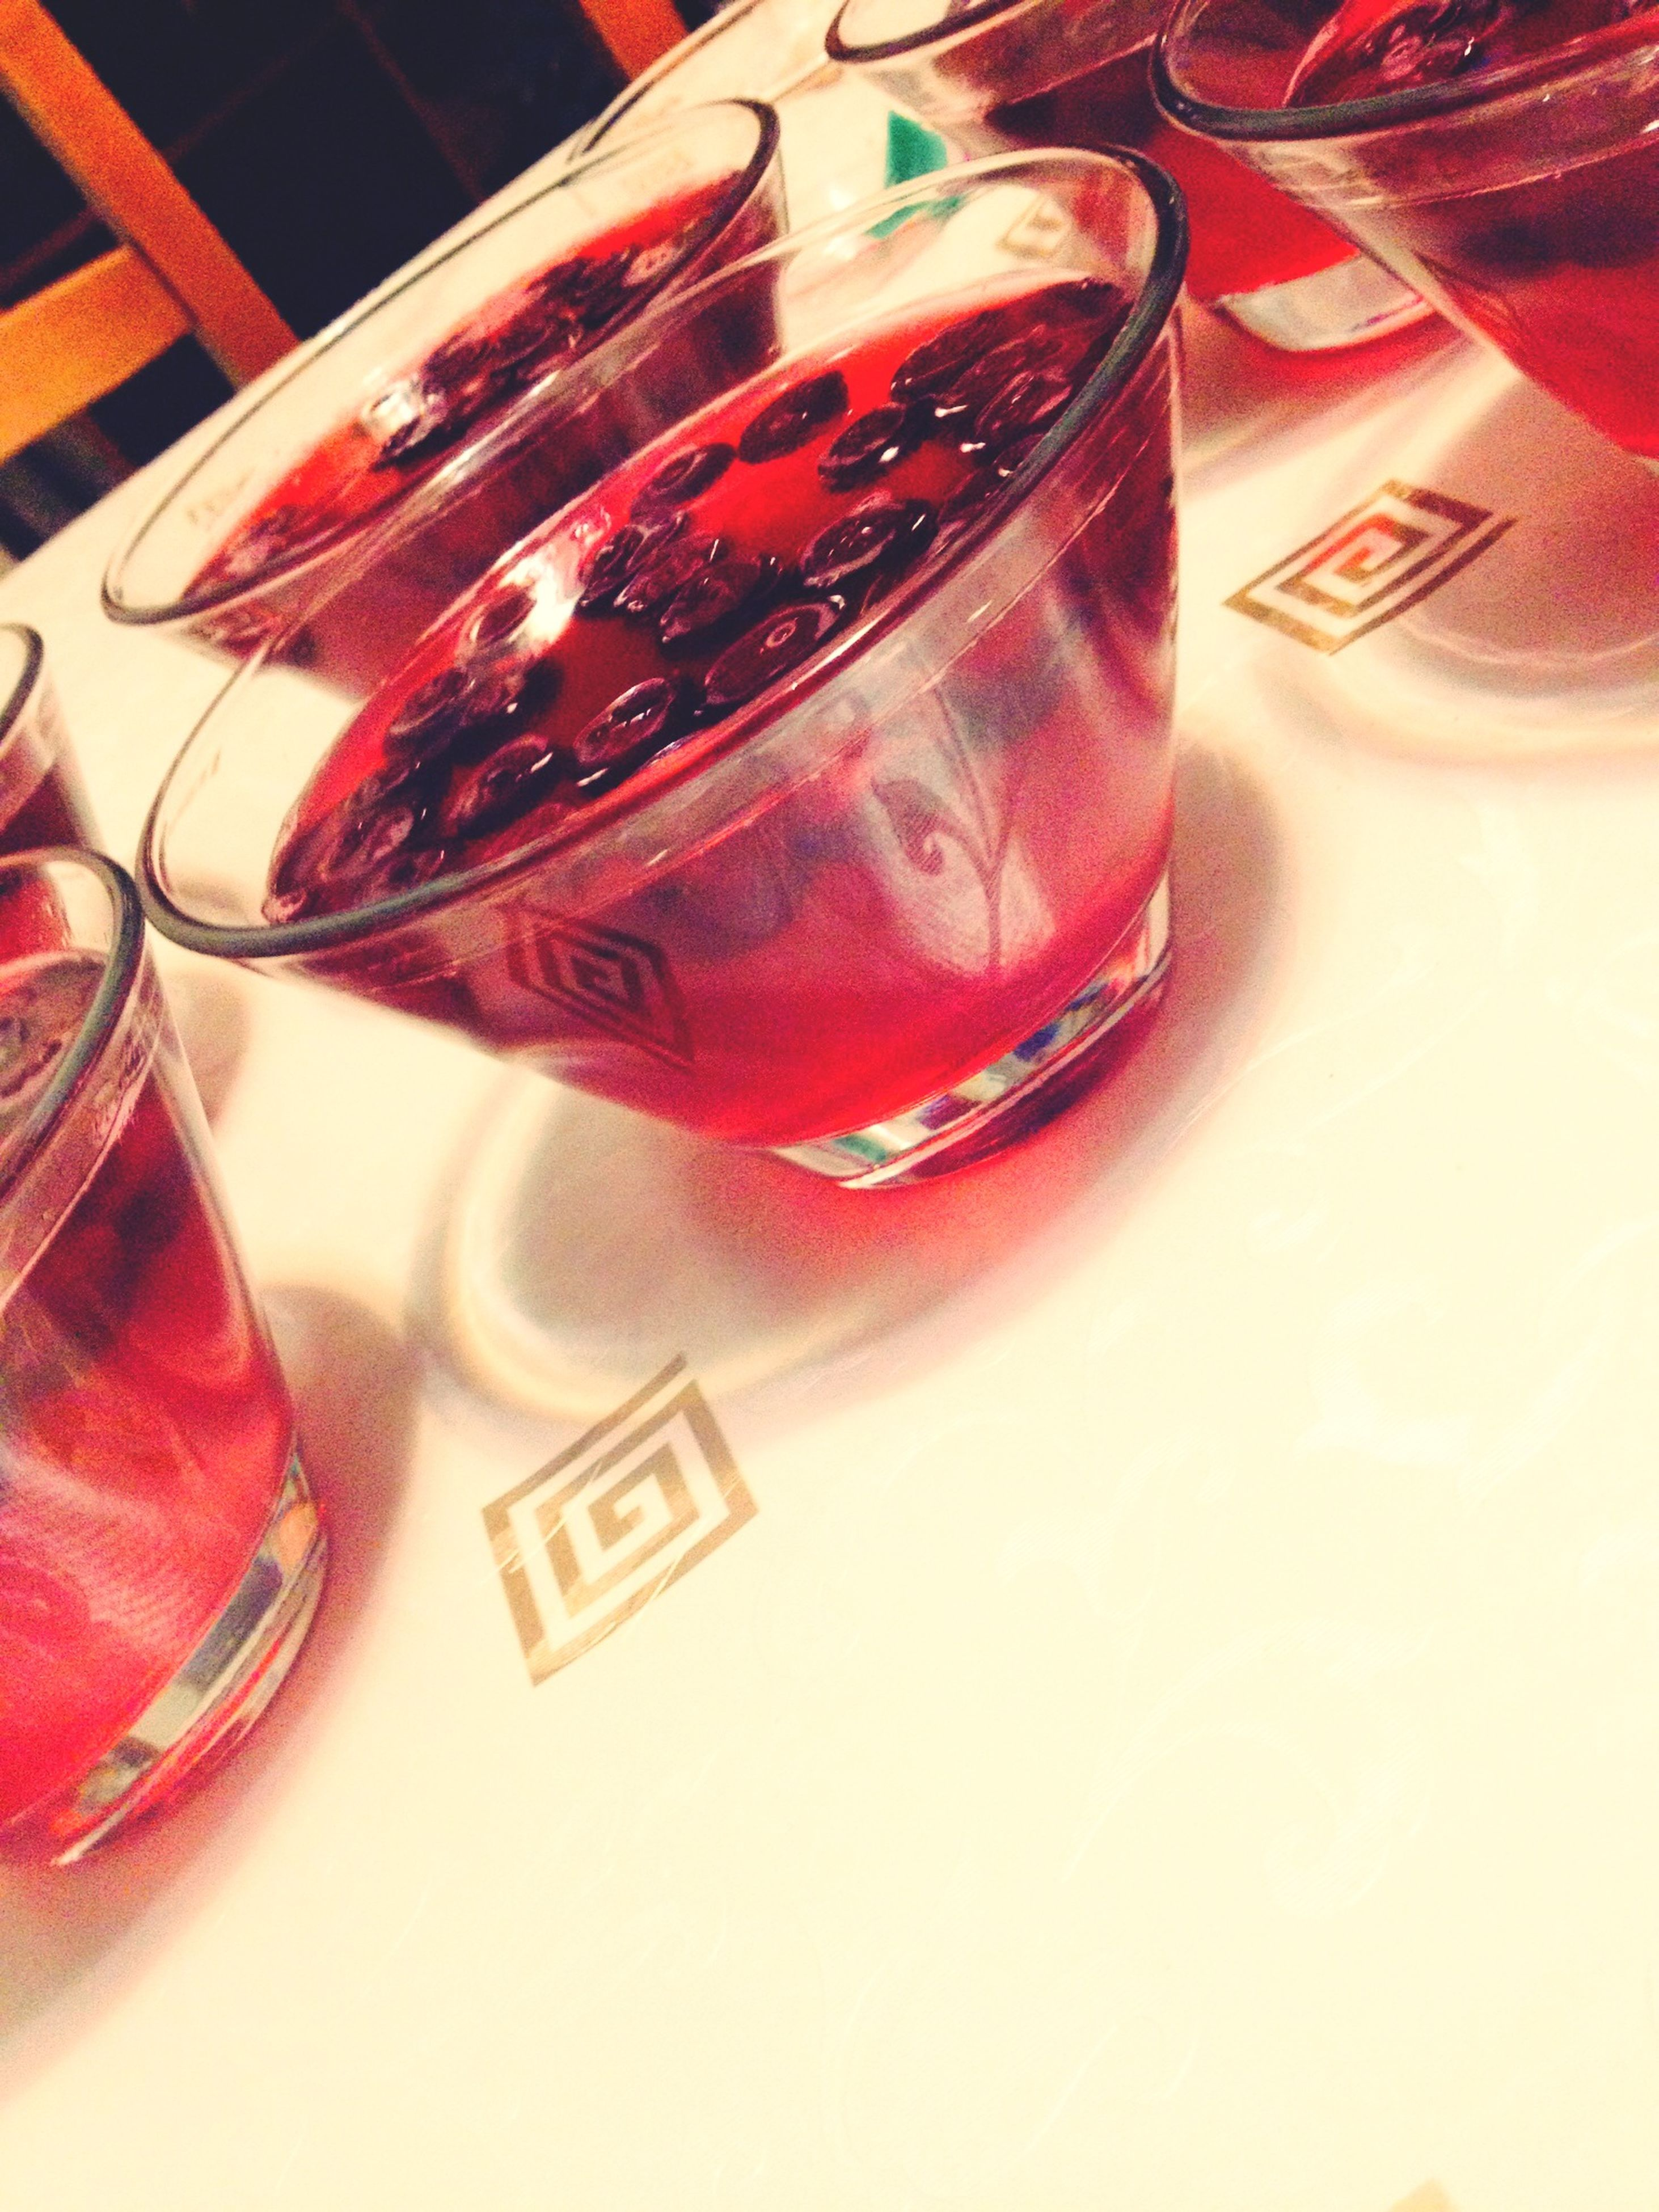 indoors, close-up, text, table, communication, still life, western script, sunglasses, high angle view, drink, red, reflection, food and drink, eyeglasses, part of, refreshment, glass - material, leisure activity